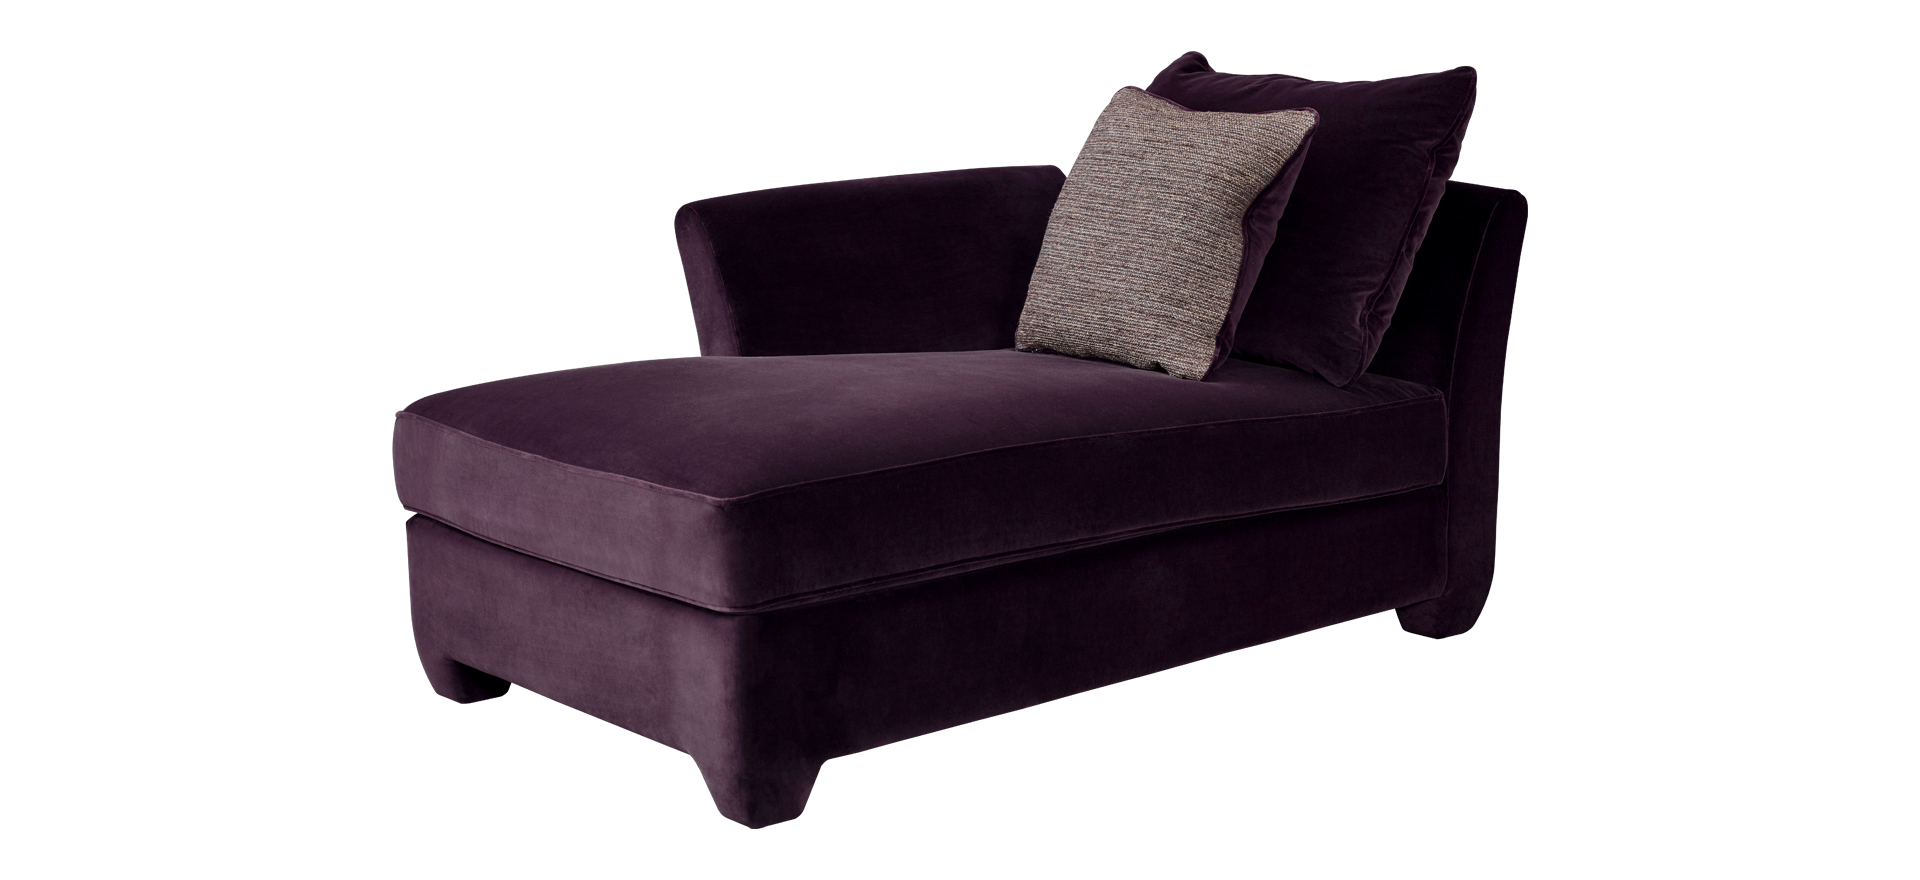 Augusto is a chaise longue covered in fabric with fabric or leather cushions, from Promemoria's catalogue | Promemoria